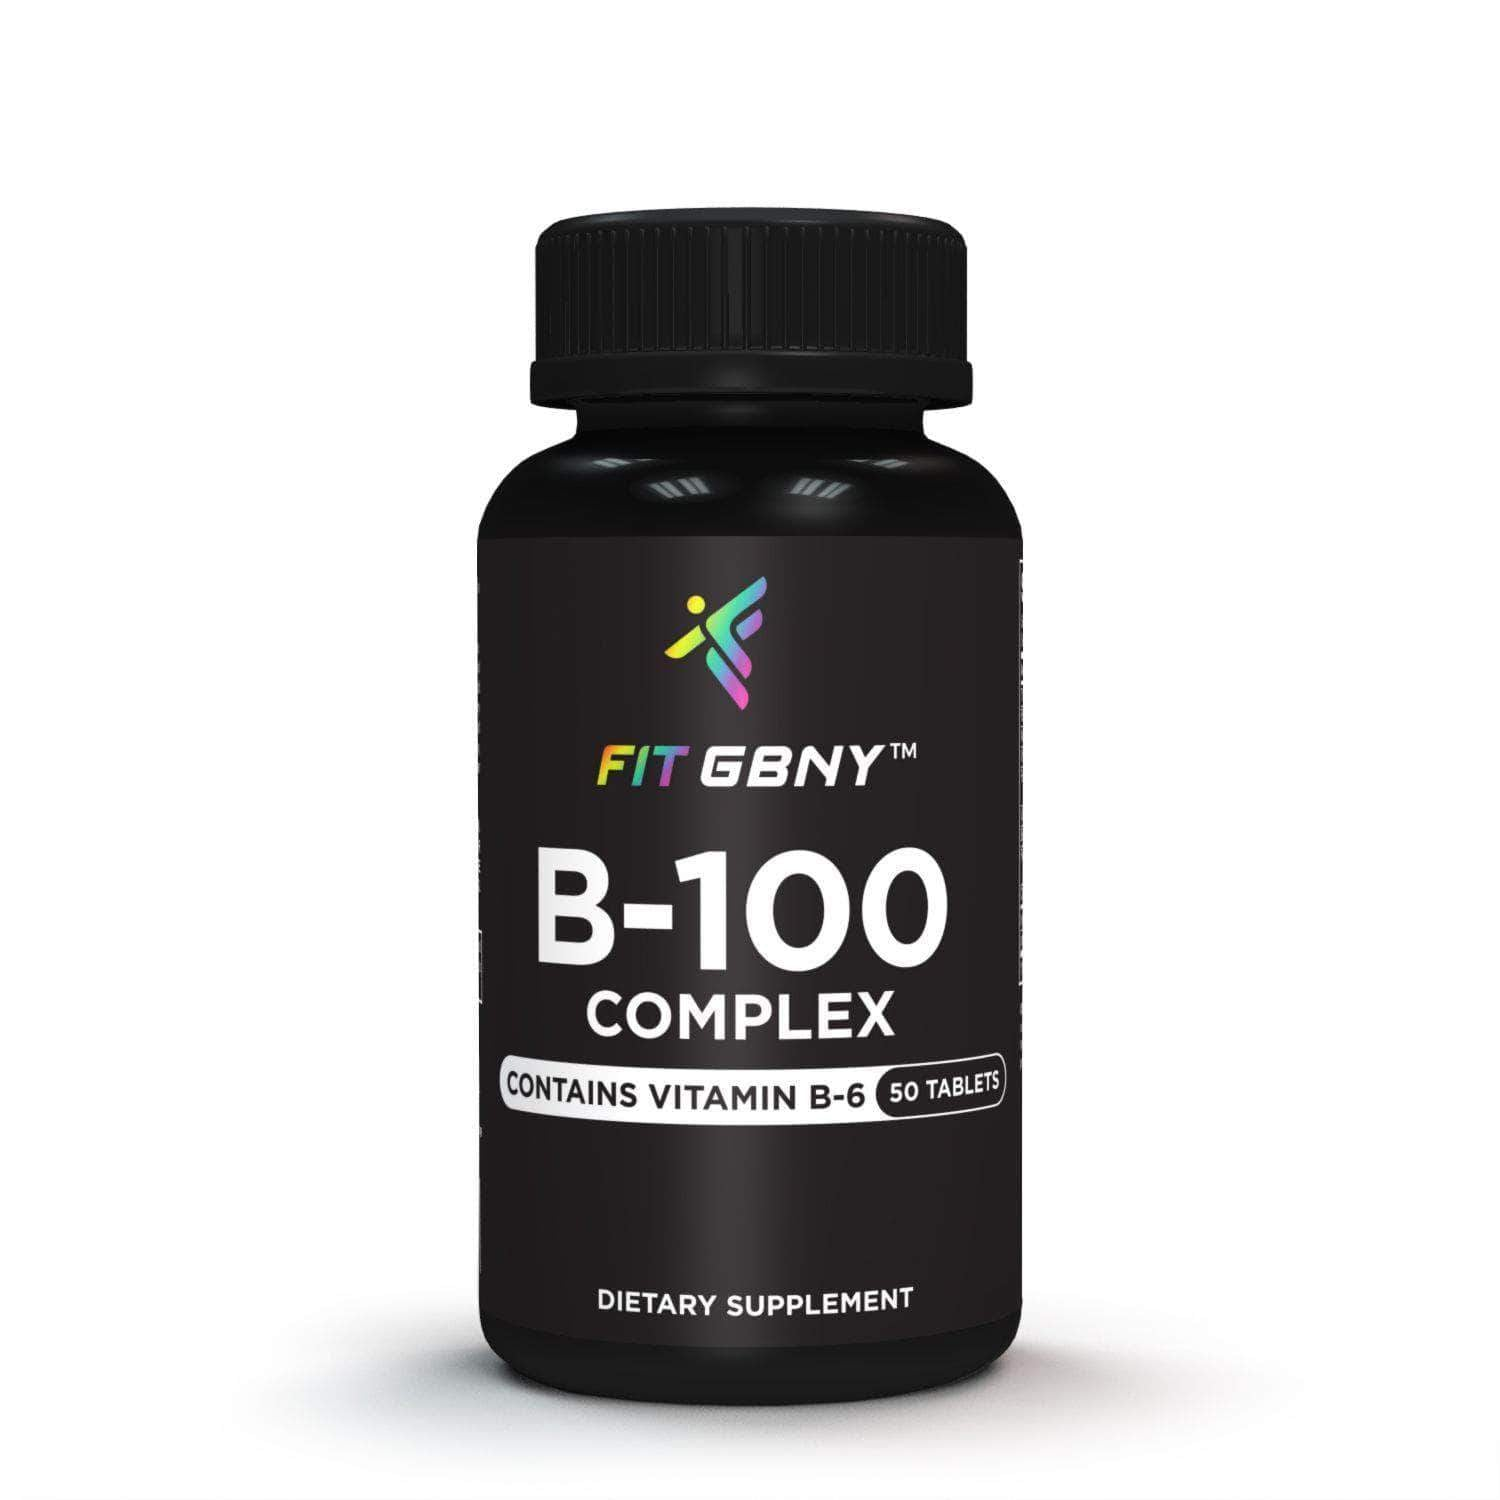 FIT GBNY Supplements Fit GBNY B-100 Complex Contains Vitamin B-6 (50 Tablets) FGBVB100